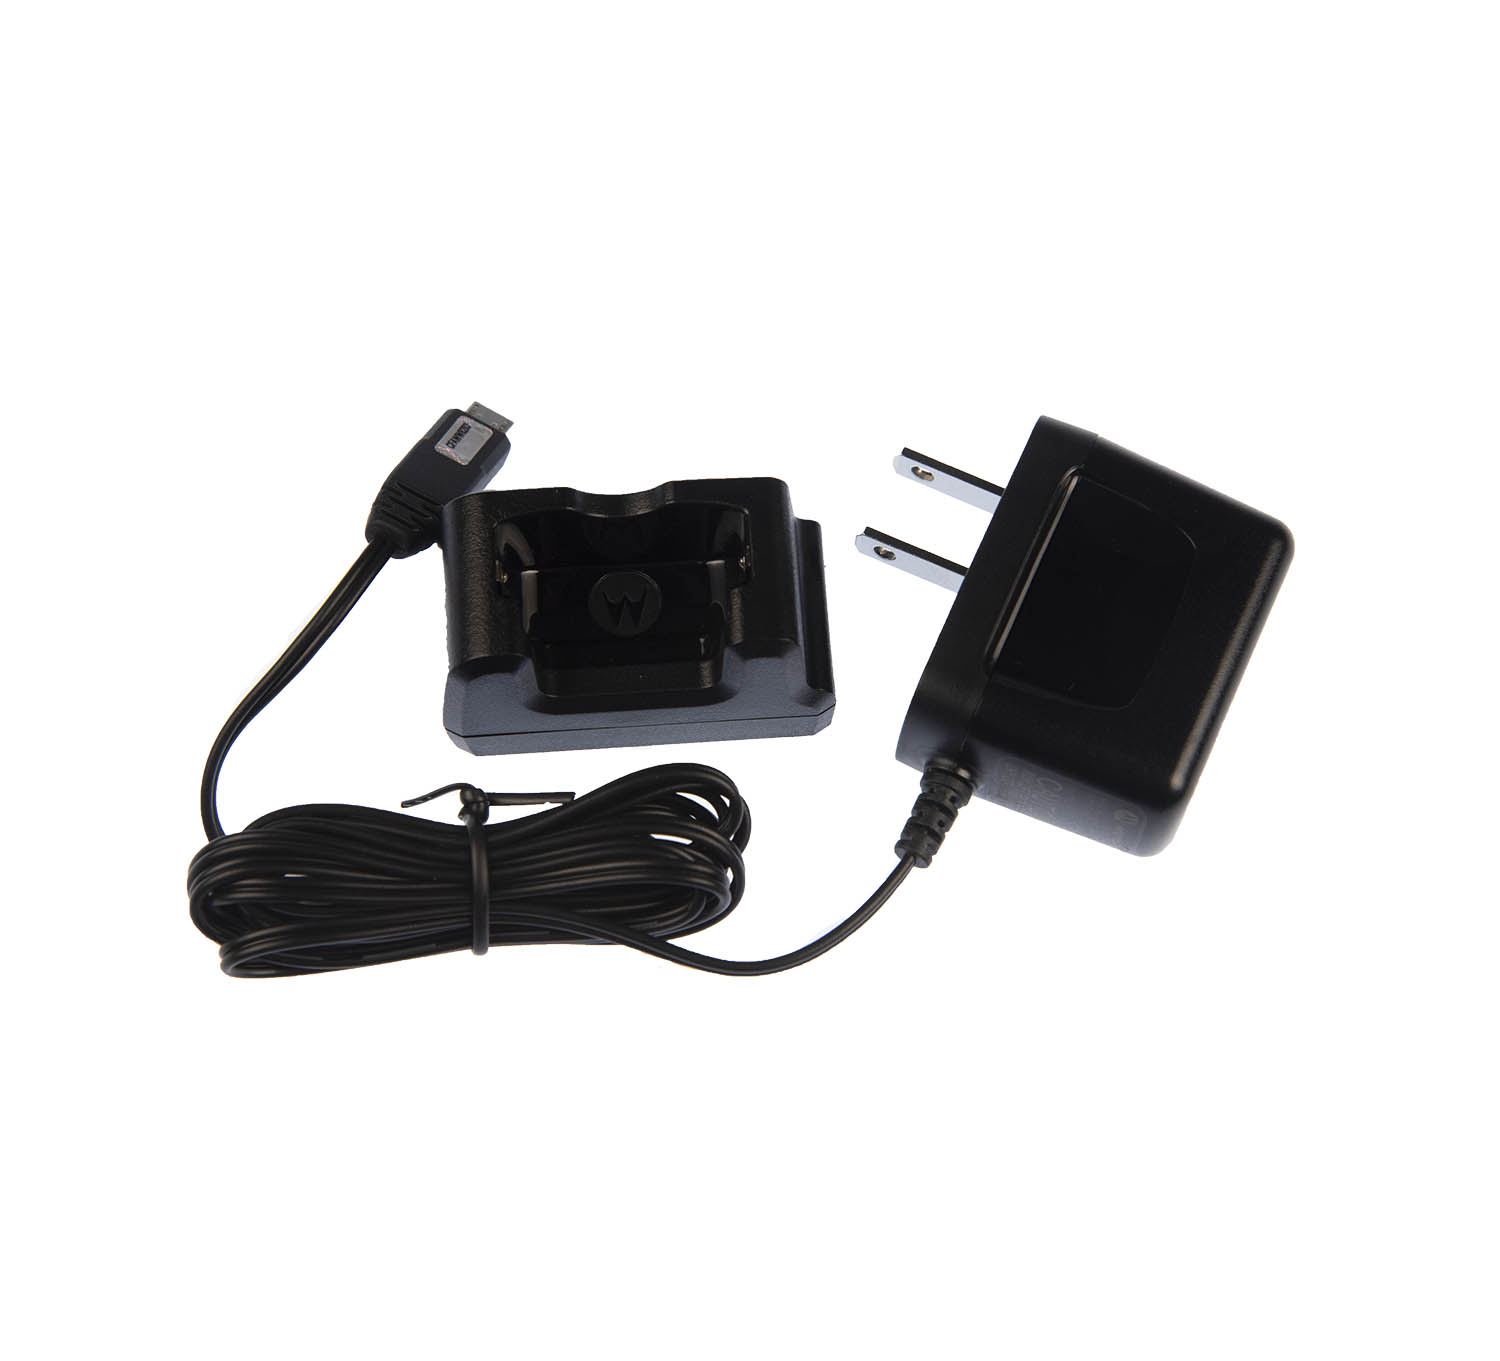 motorola HKLN4509 CLP Single Unit Pod Charging Cradle/Power Supply- HKLN4512 & HKLN4513 sold separately